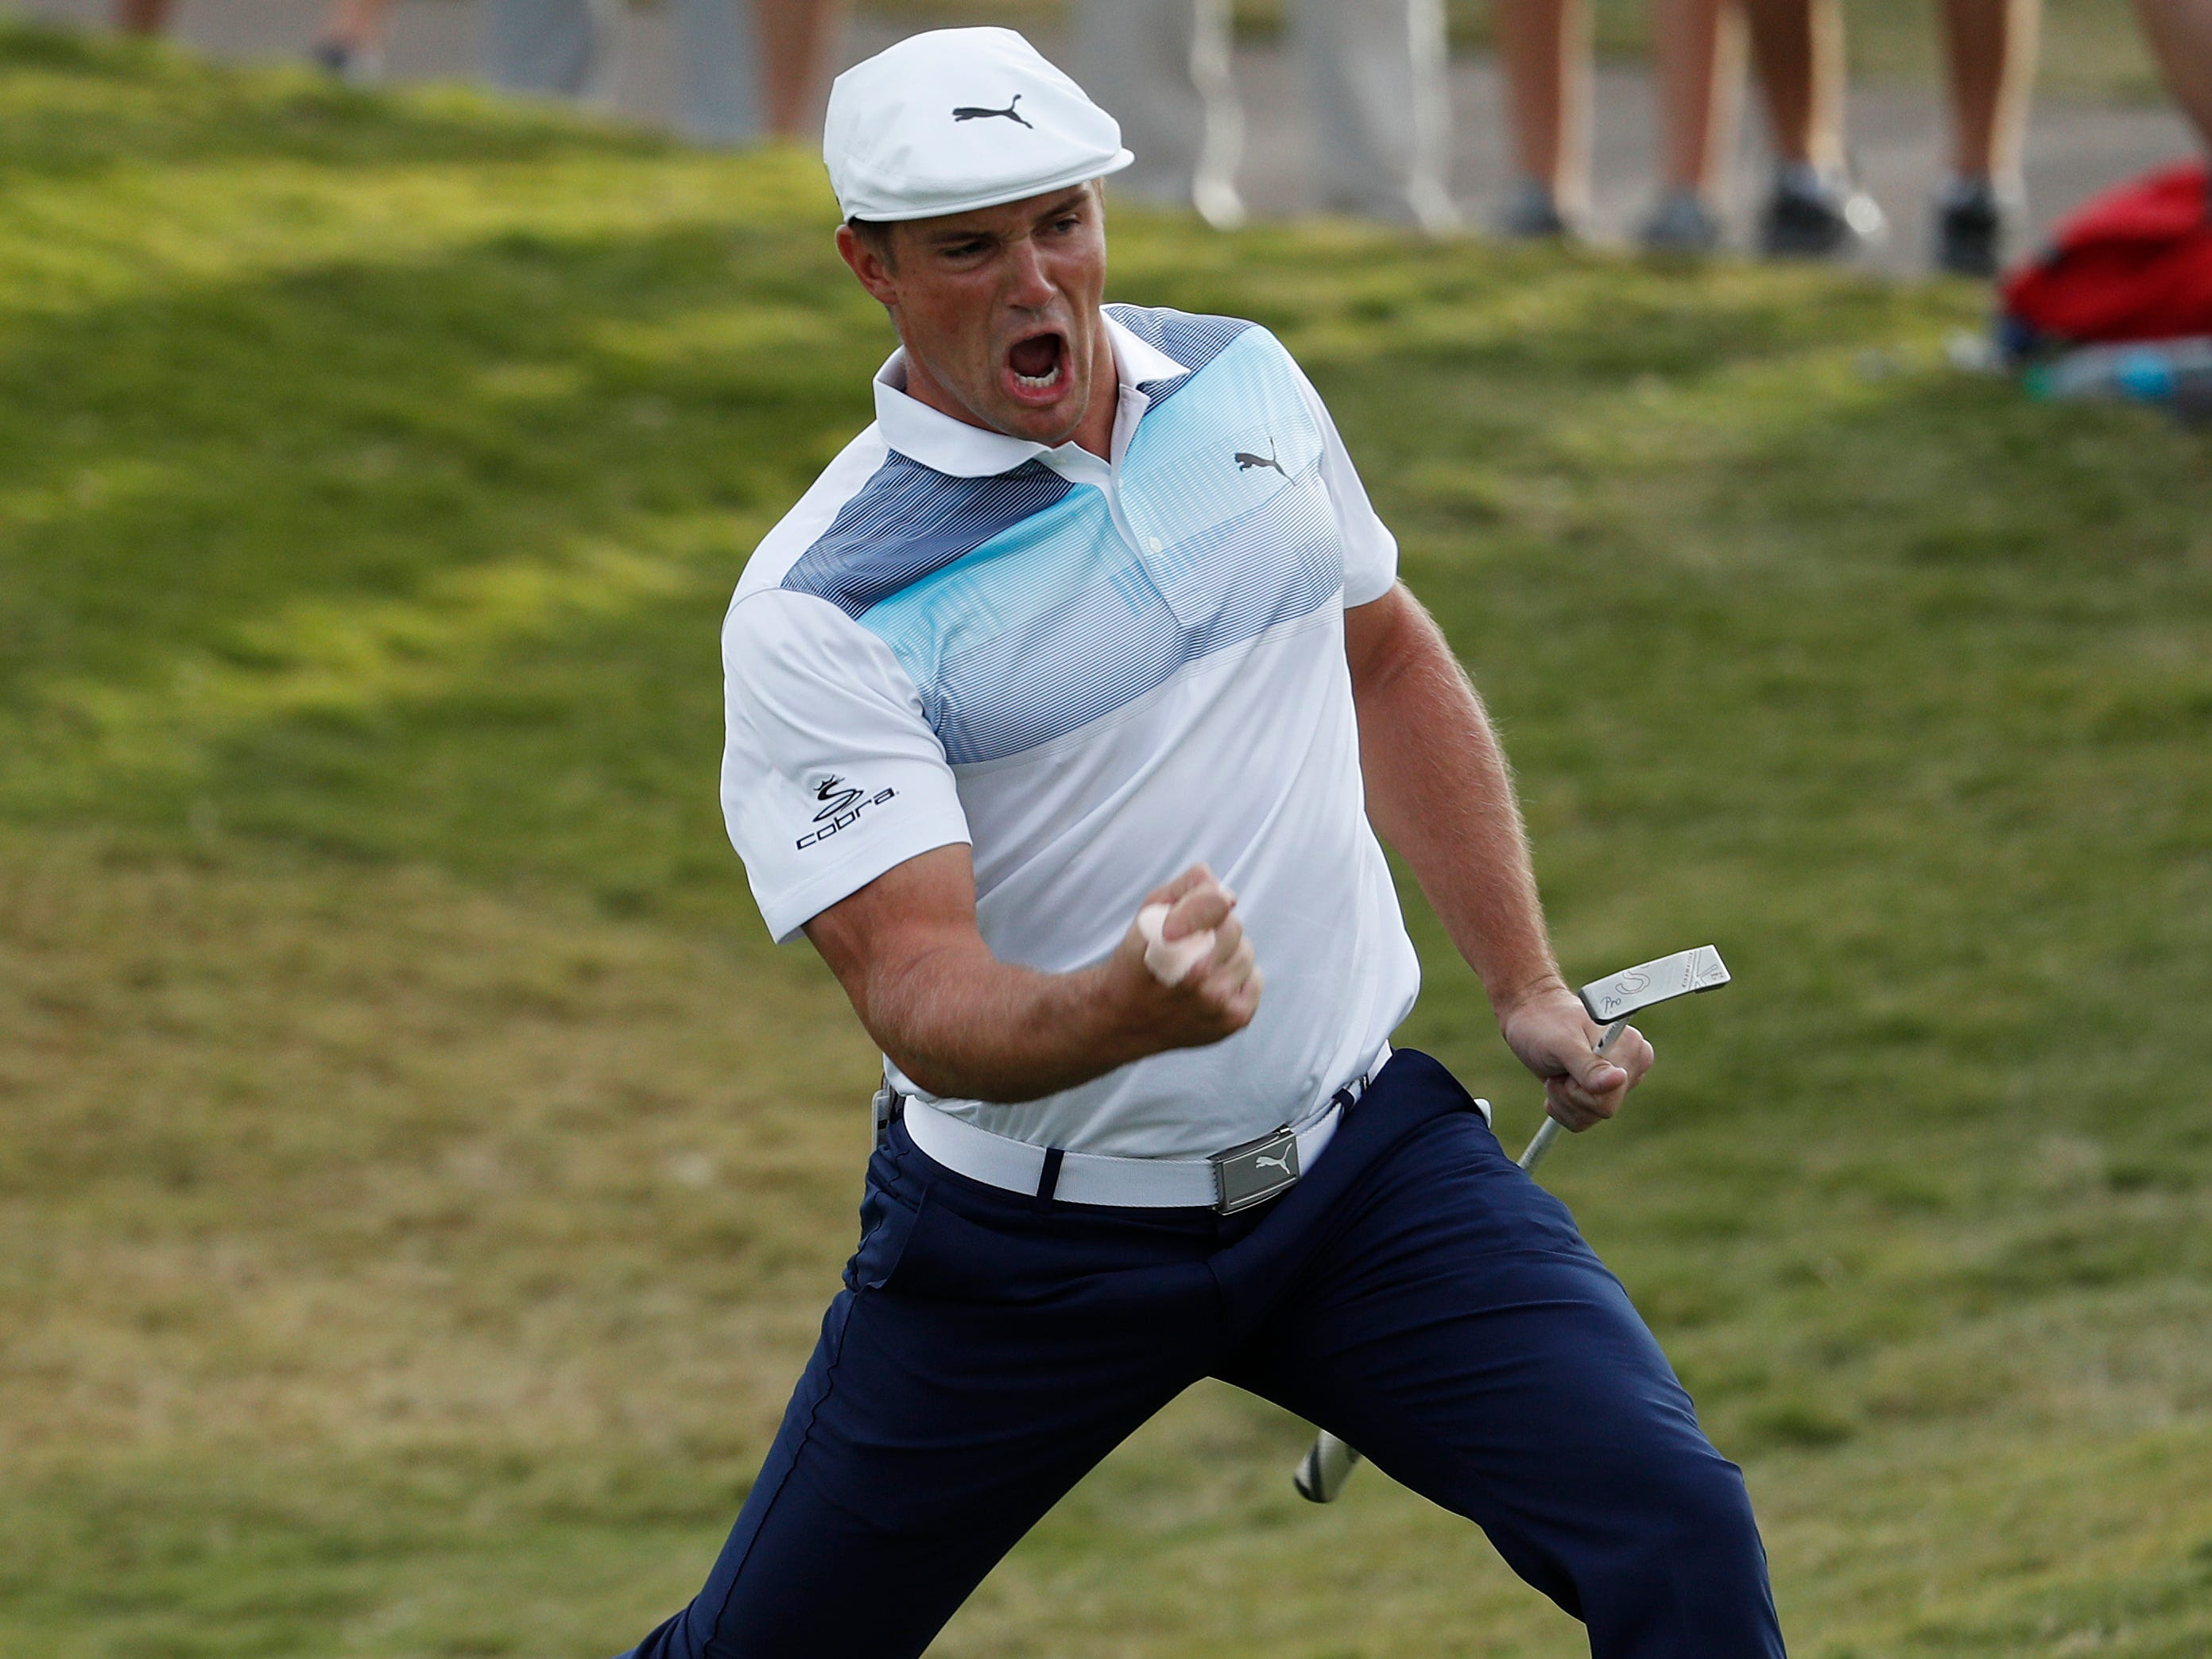 Nov. 4: Bryson DeChambeau celebrates after sinking a putt for an eagle during his win at the Shriners Hospitals for Children Open golf tournament.